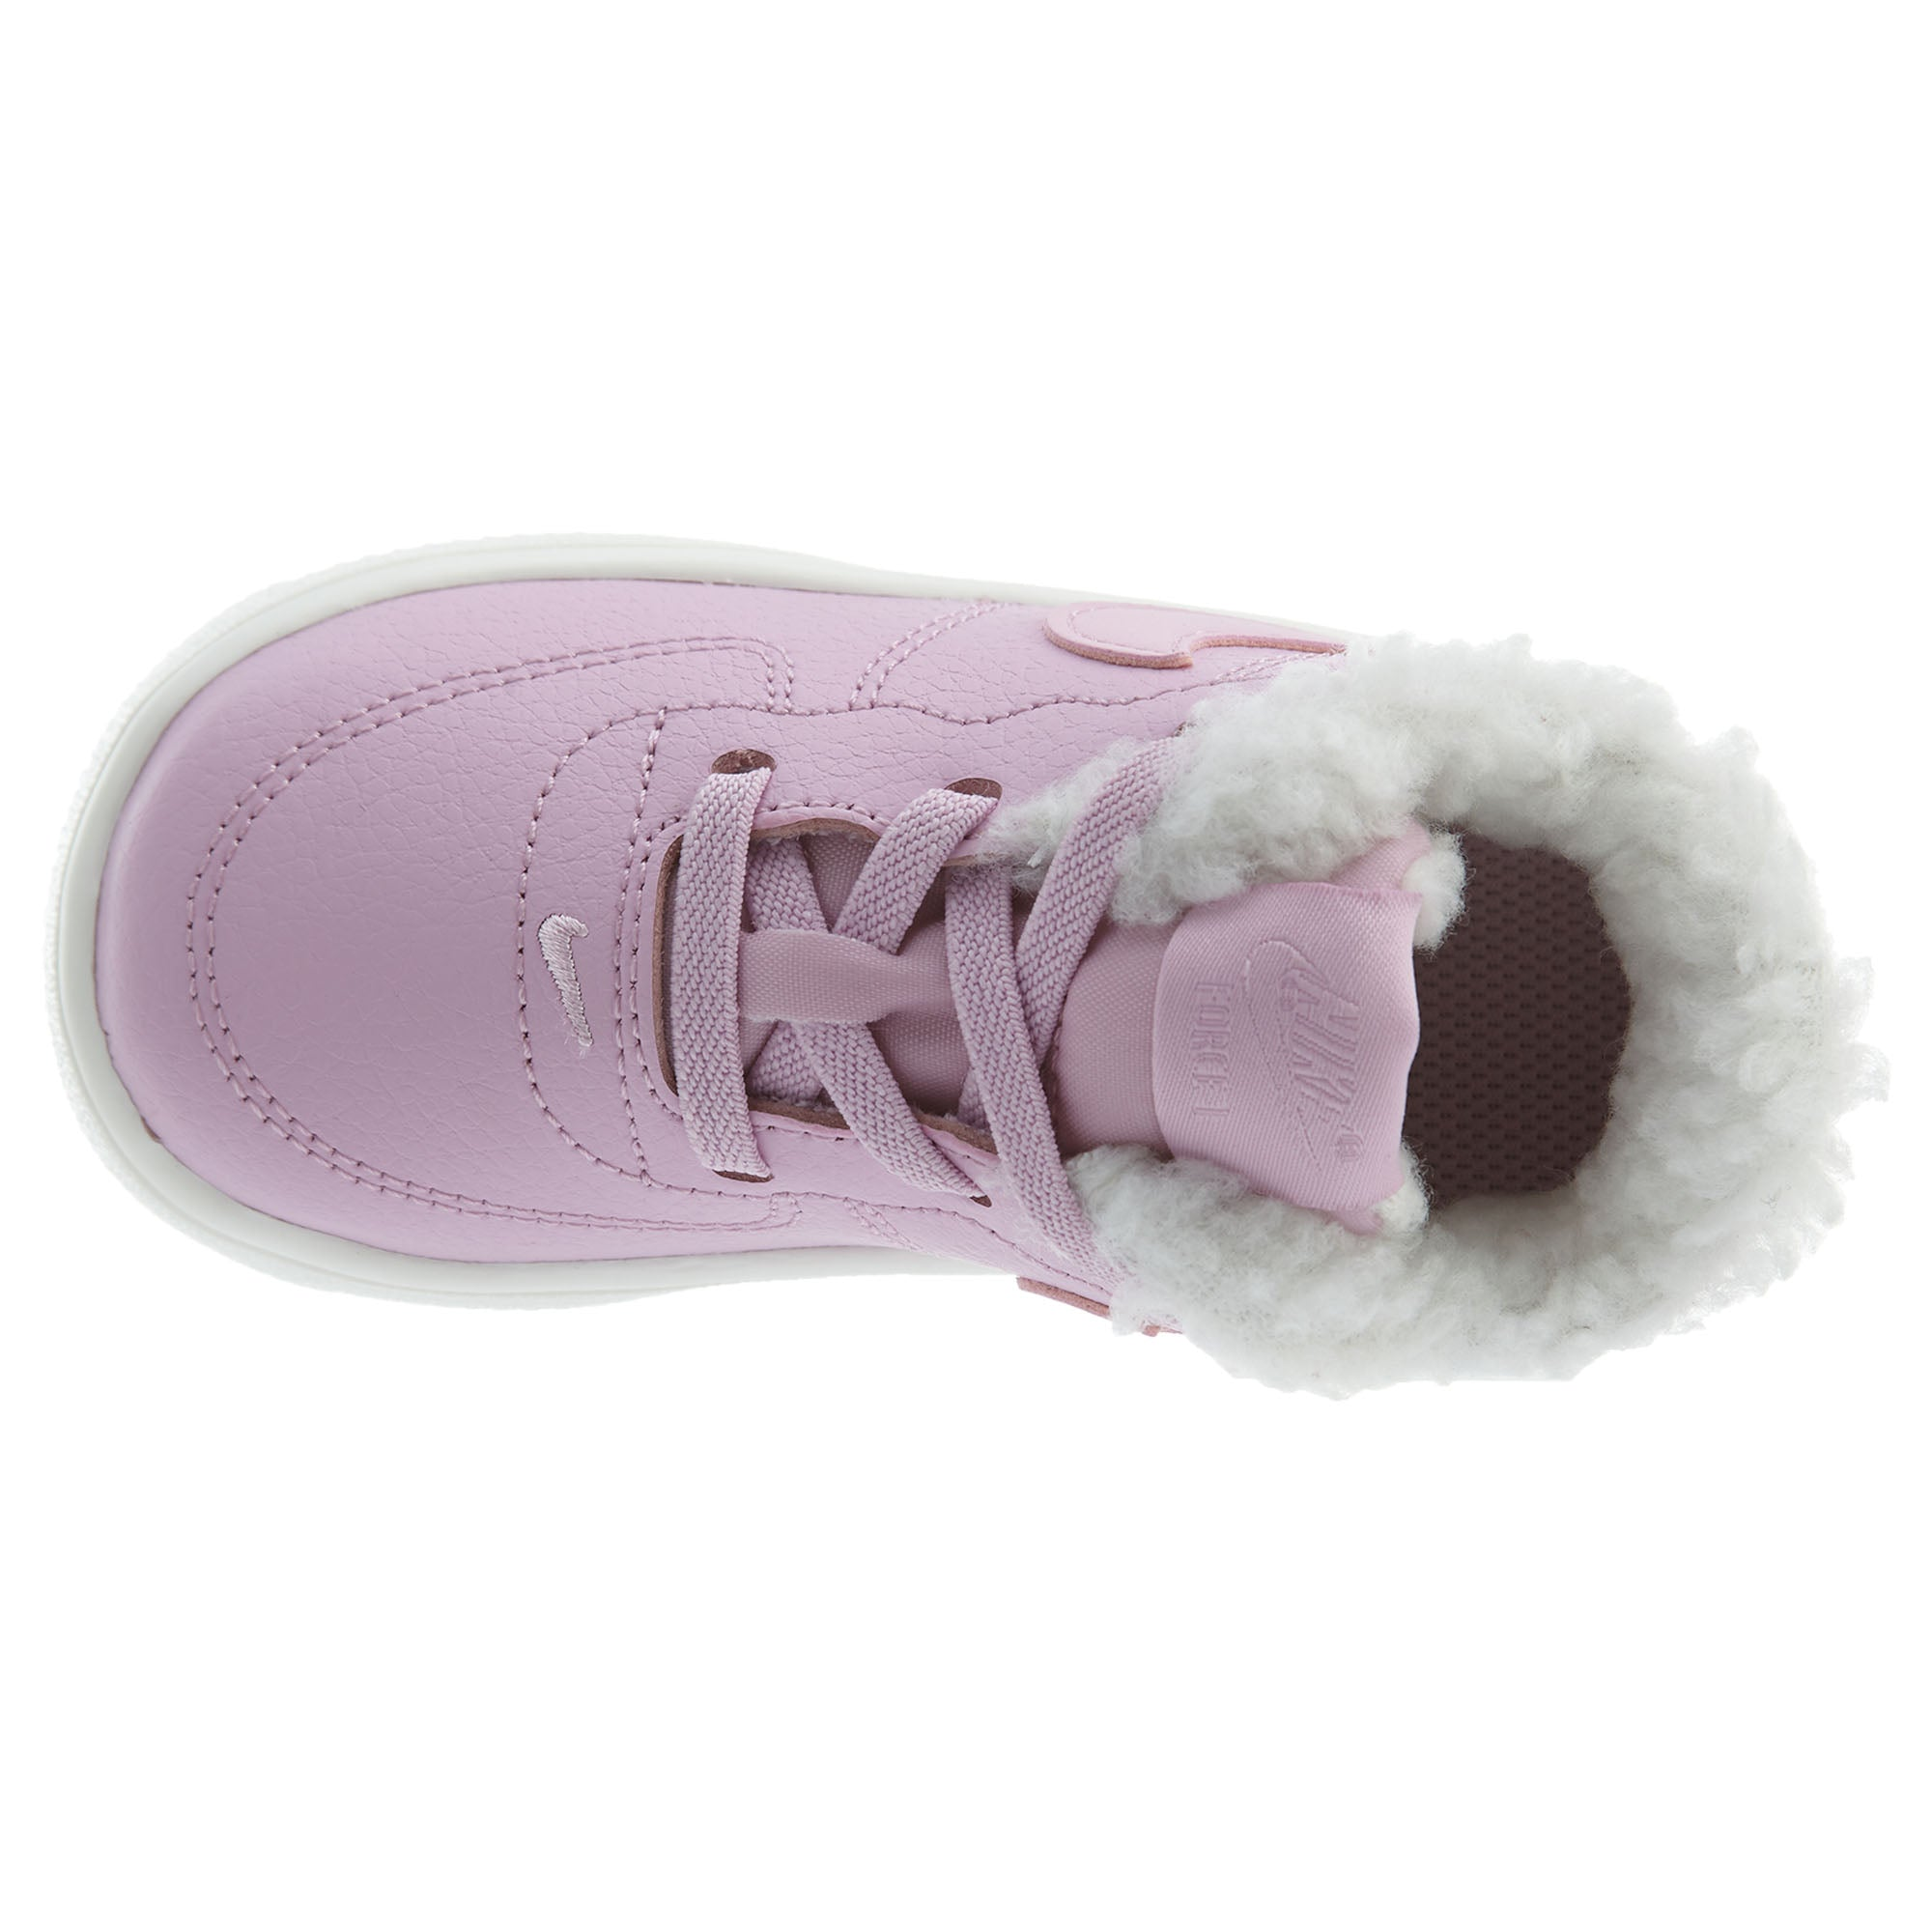 huge discount 08e56 f9a42 Nike Force 1   18 Se Toddlers Style   Ar1134-600. NIKE   Baby   Toddler  Shoes